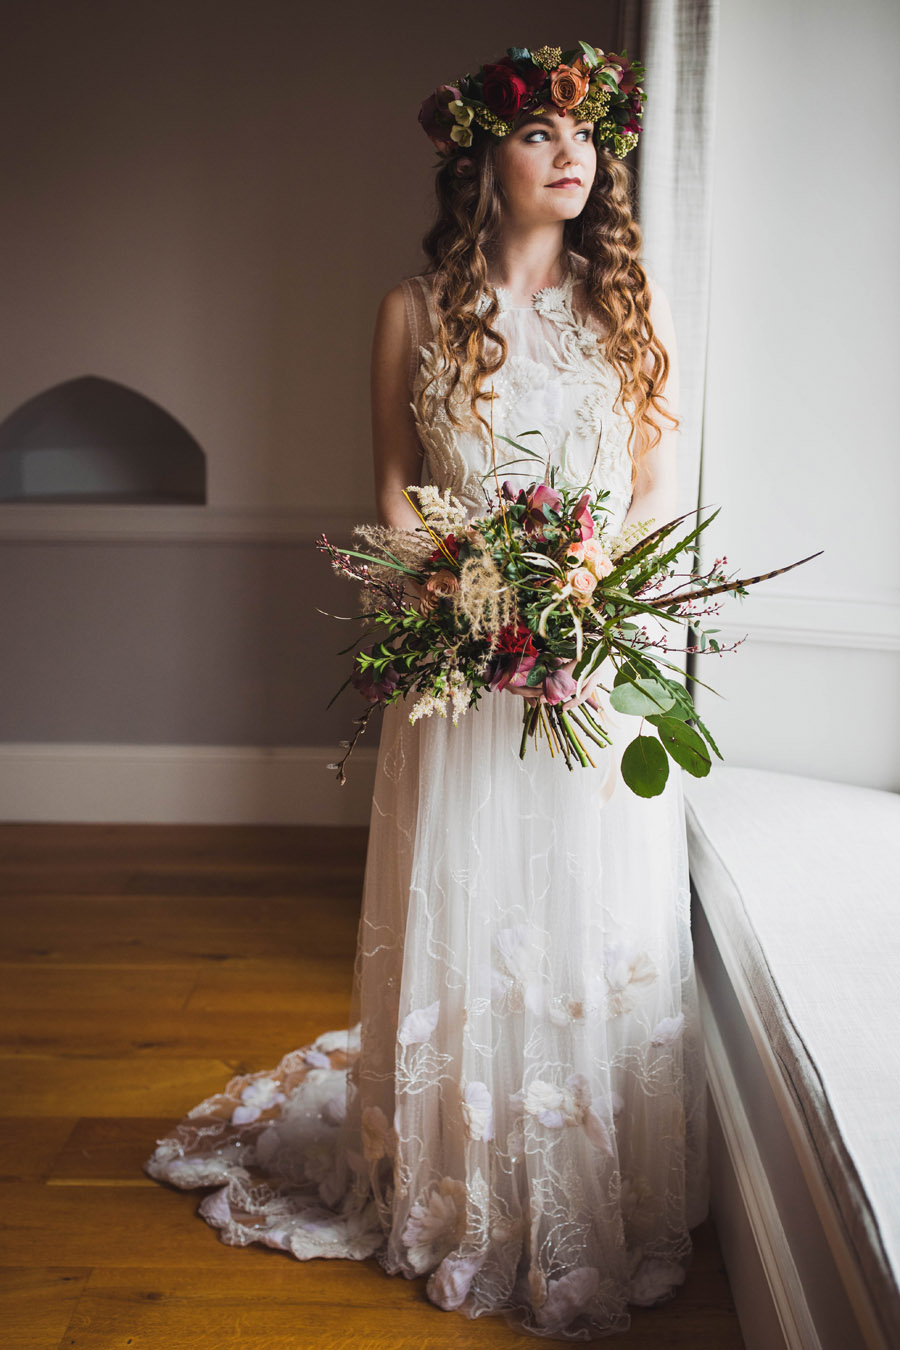 Salisbury Manor wedding photoshoot with amazing local suppliers, image credit Antonia Grace Photography (1)